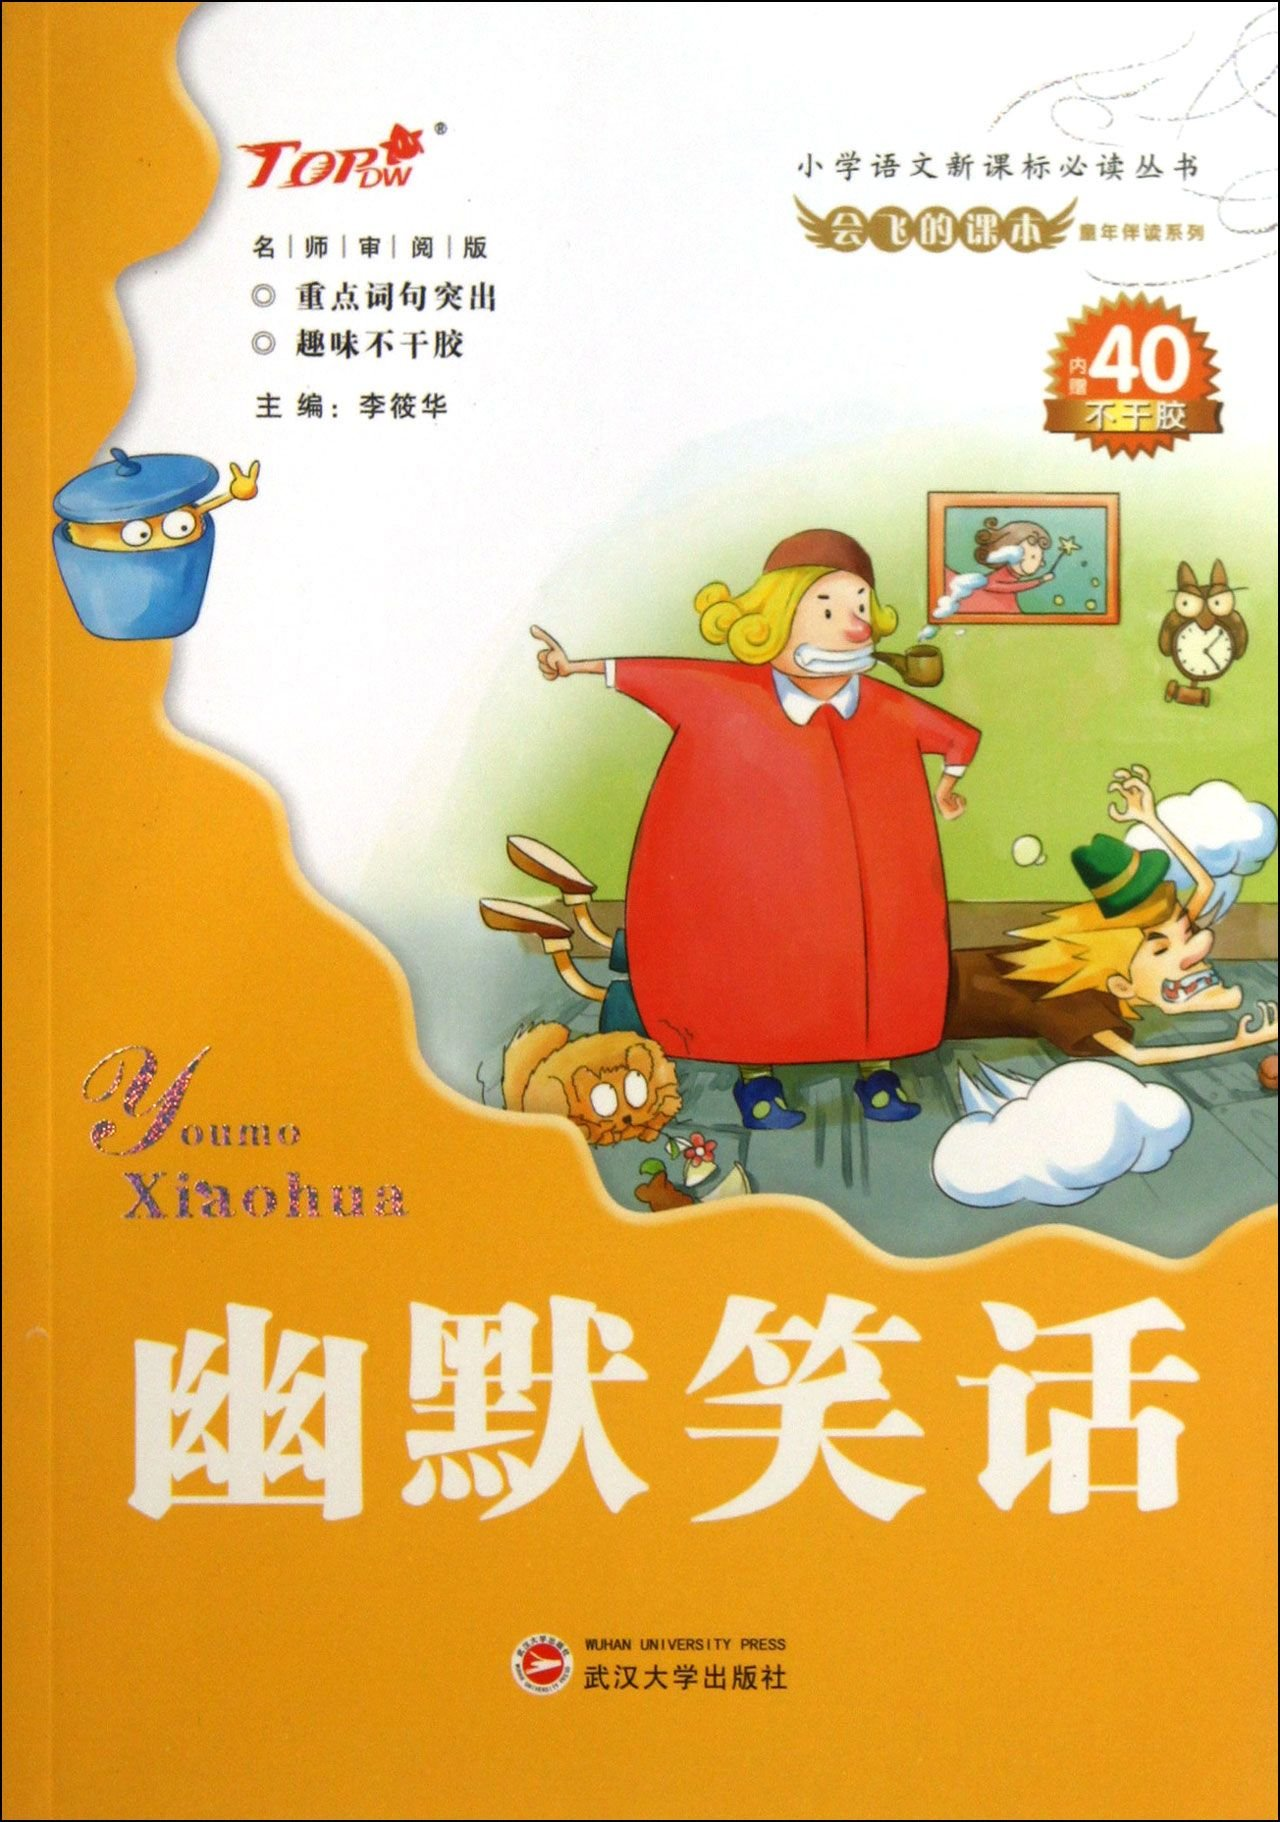 Flying with reading textbooks childhood series New Curriculum primary language reading books : Humor jokes ( within 40 gift stickers )(Chinese Edition) pdf epub